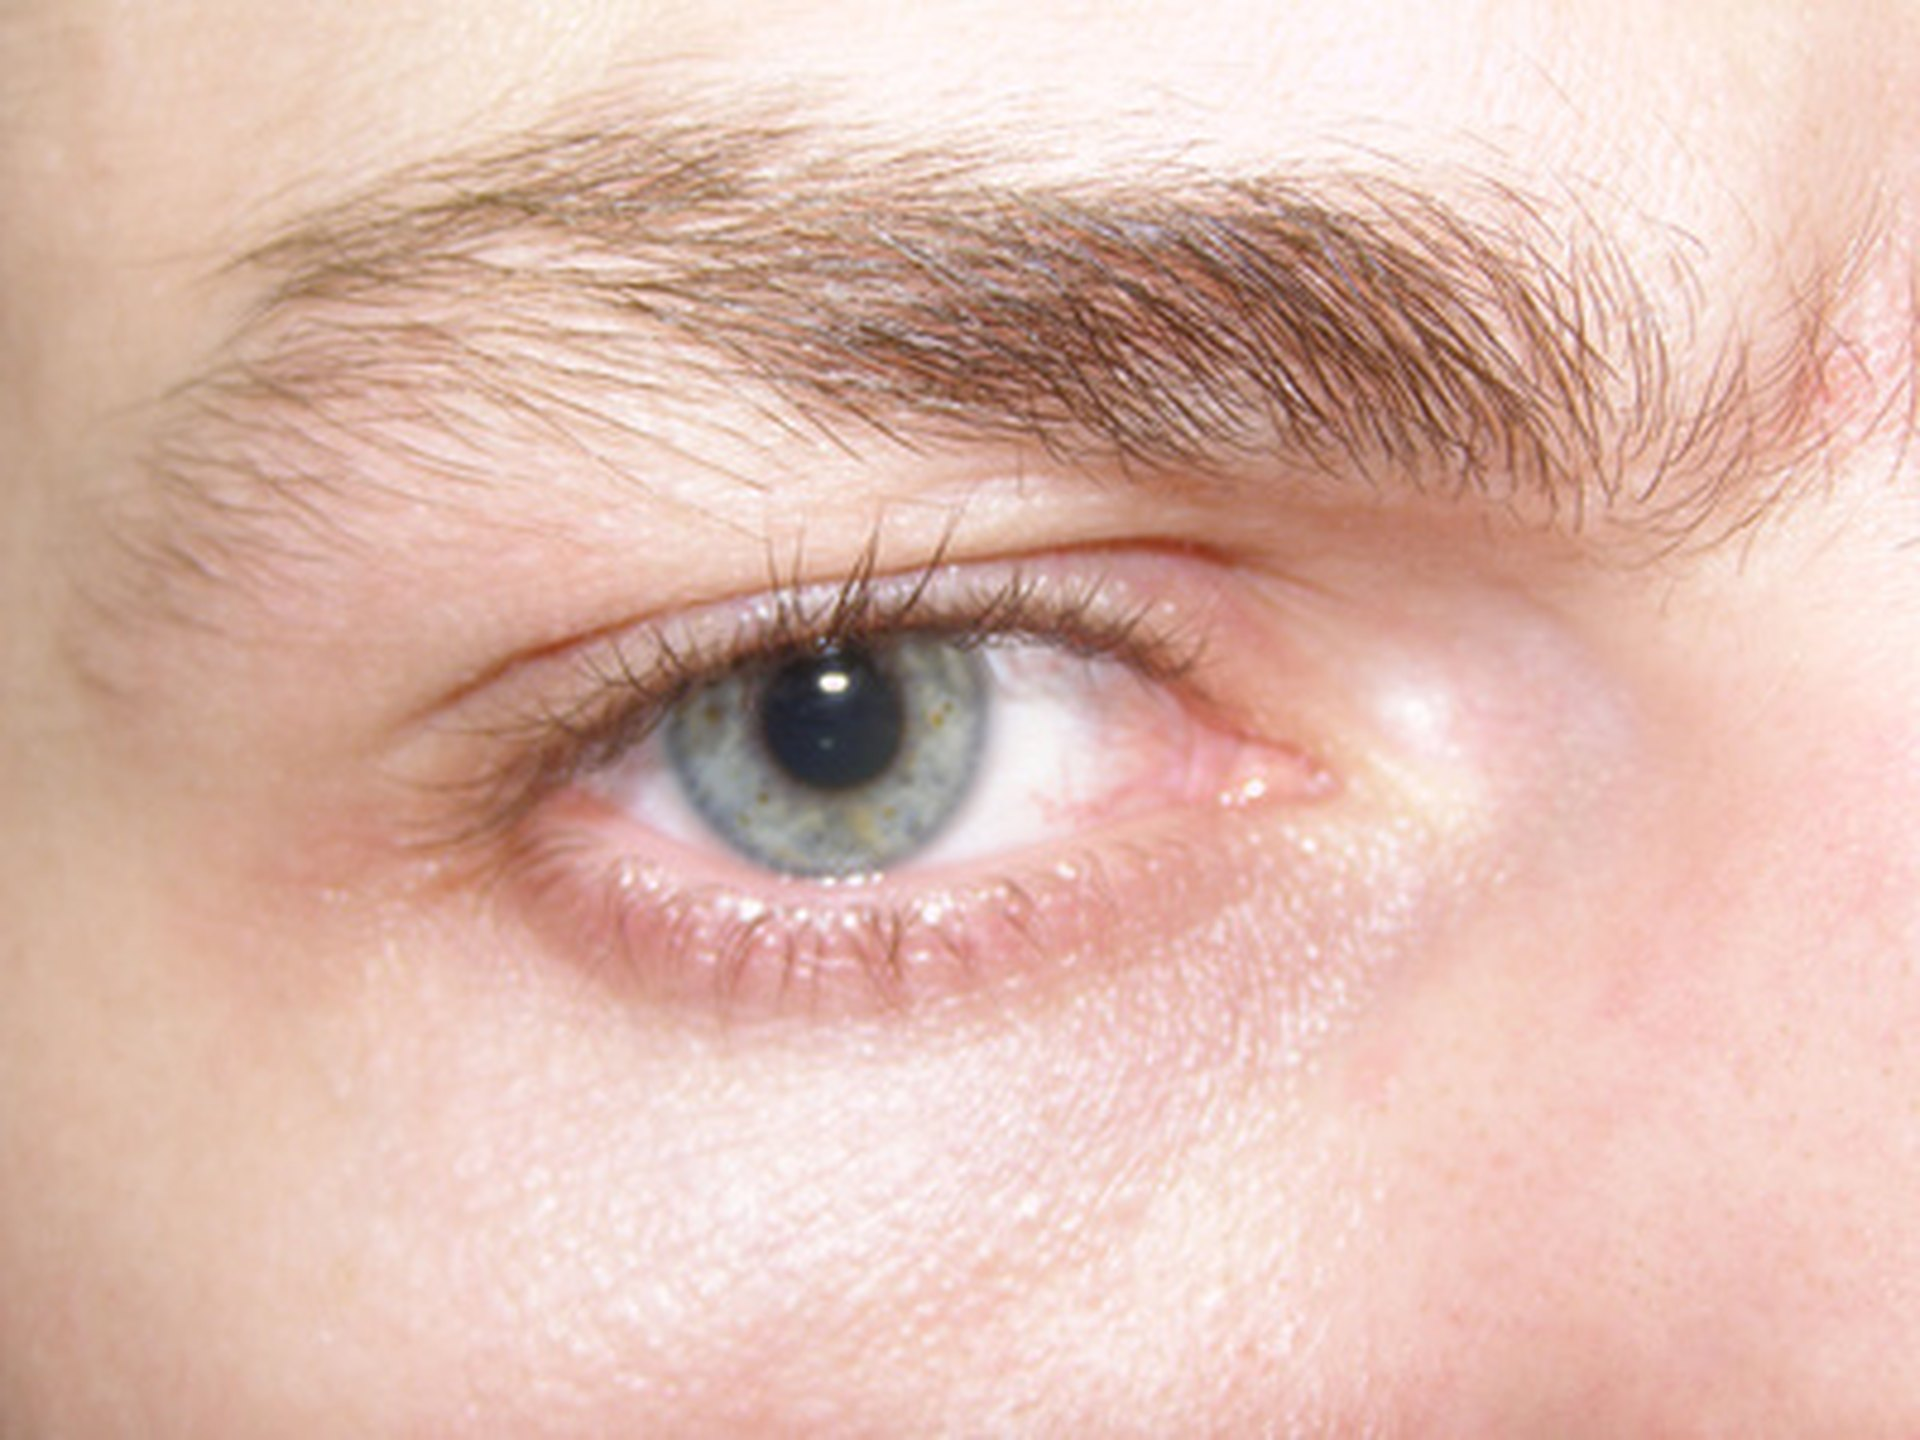 Adverse Reactions To Vitamin E Drops In The Eye Livestrong